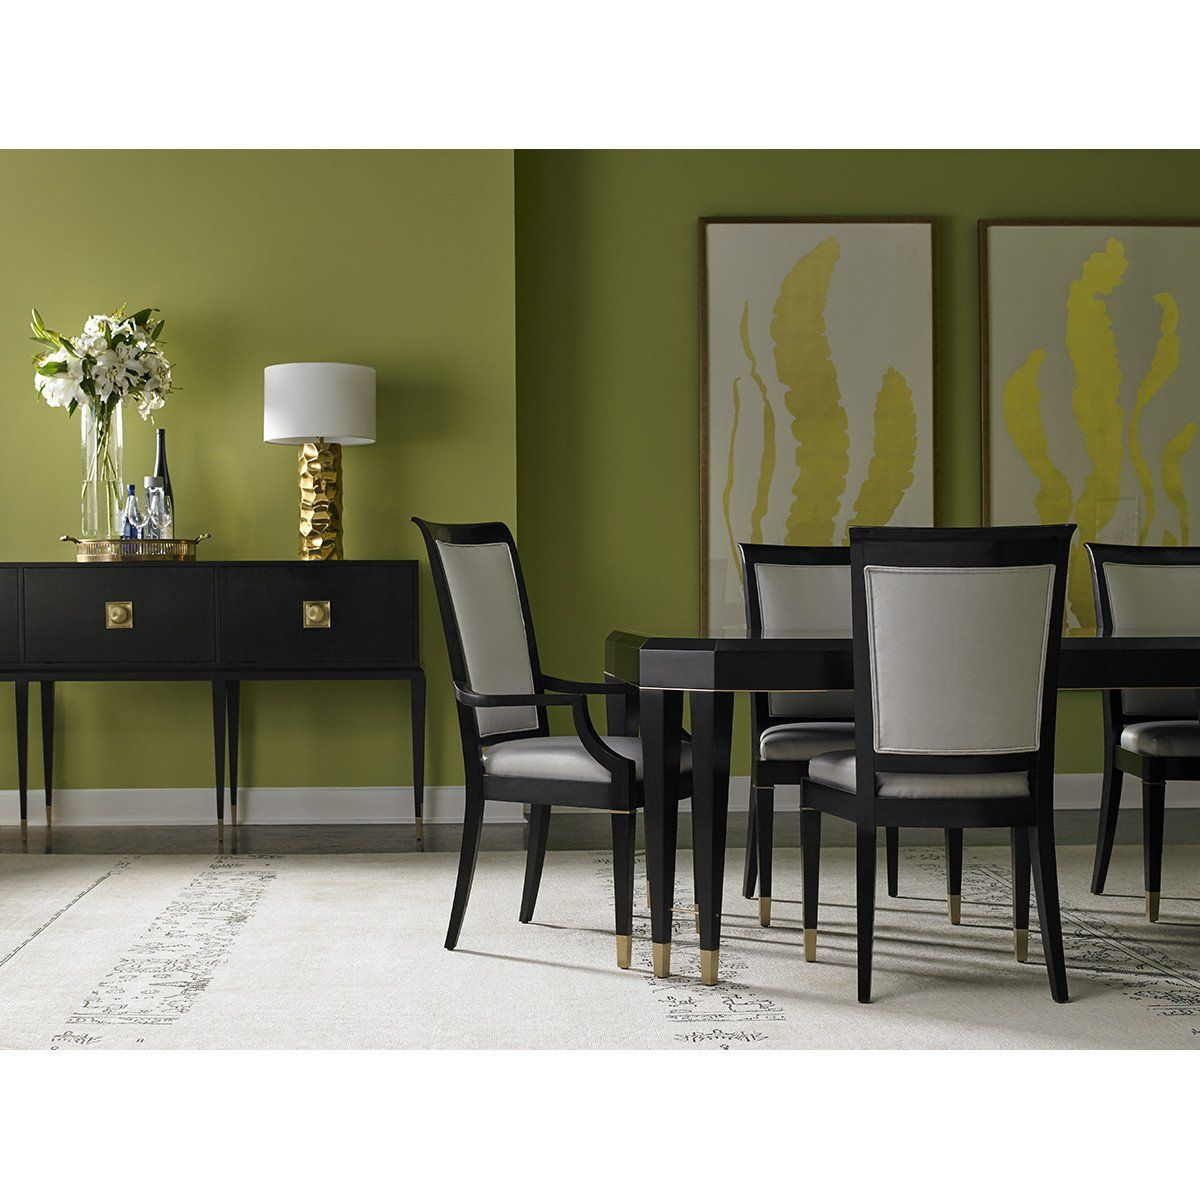 Lillian August Noir Dining Table #dunkleinnenräume